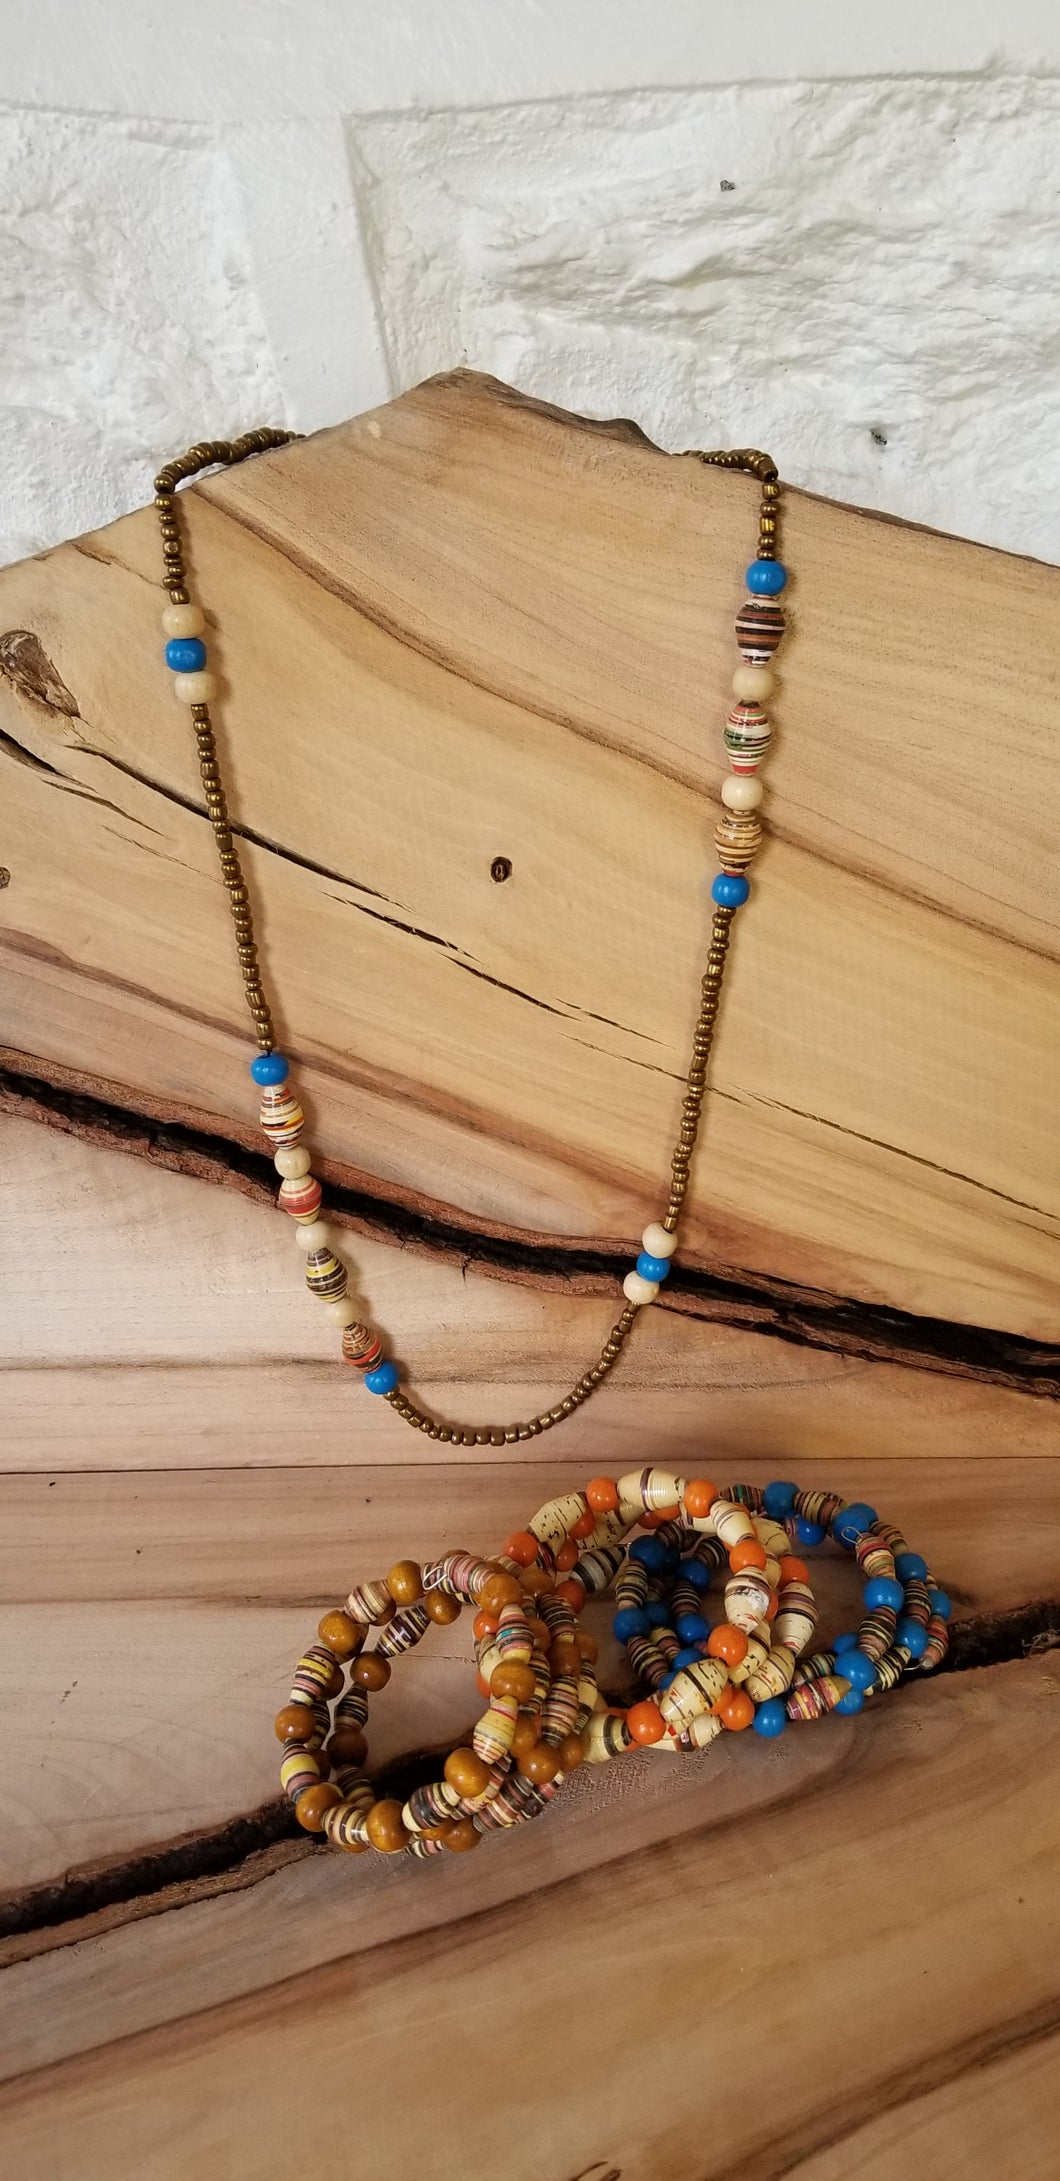 Abayudaya Ugandan Necklace and Bracelet - Blue/orange